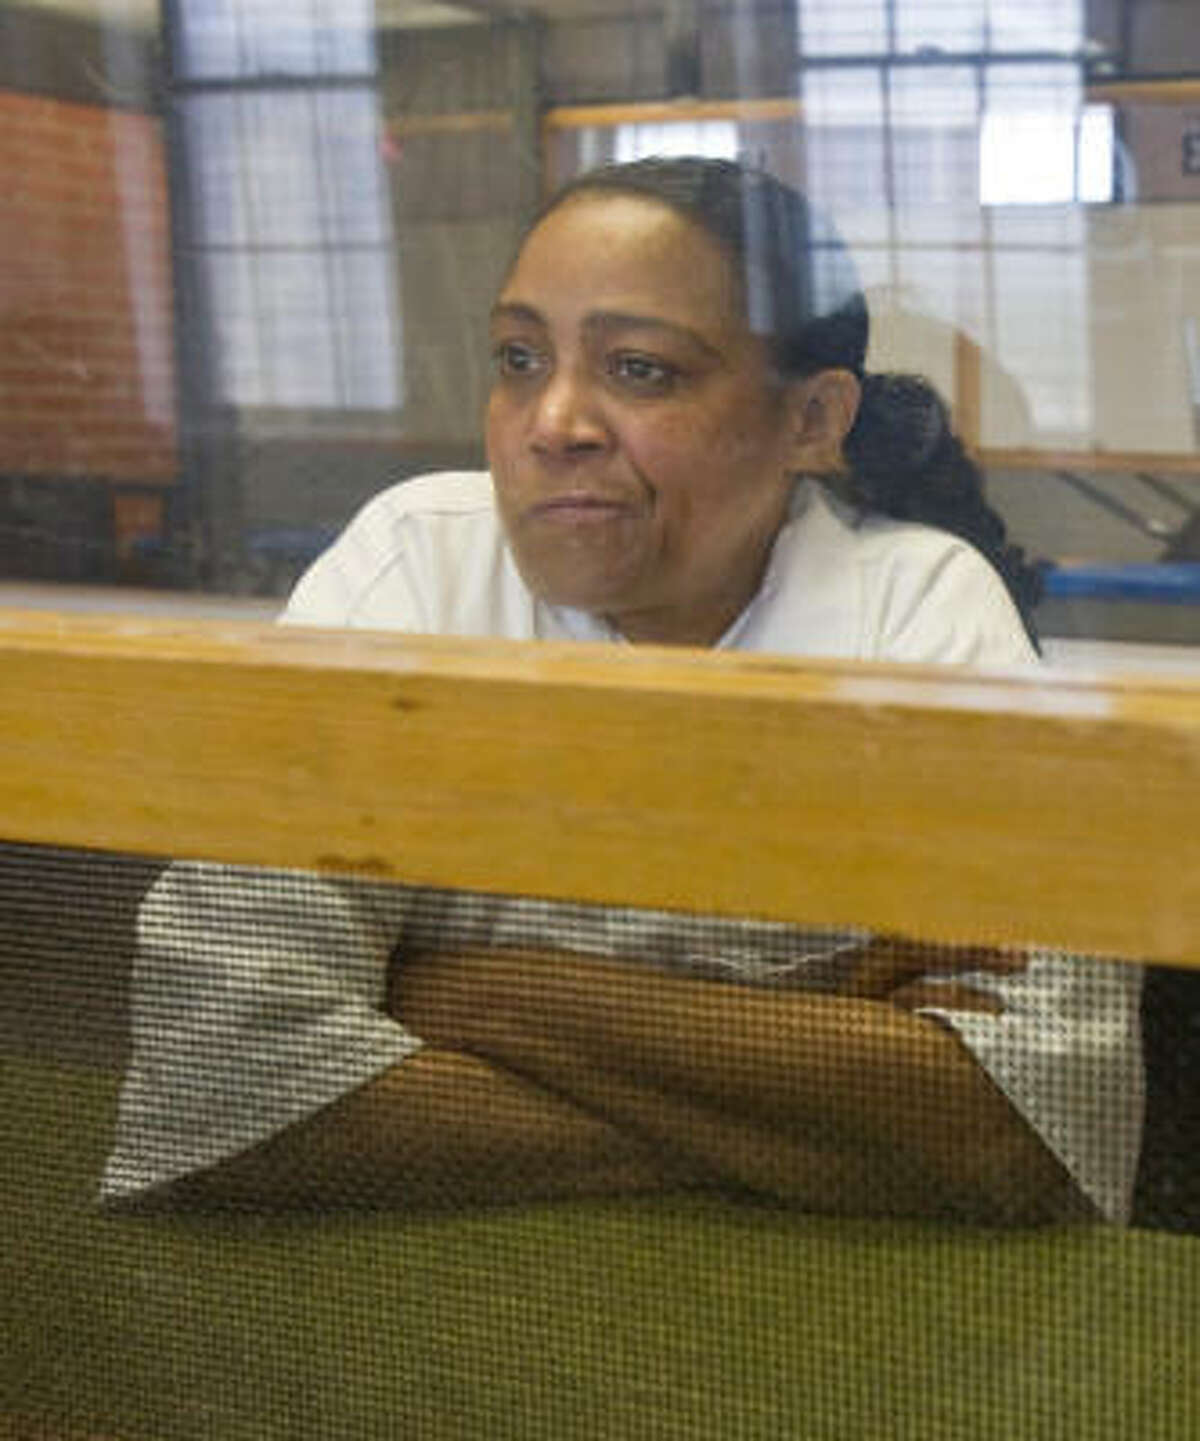 Texas' most controversial executions Name: Linda Carty Crime: On May 16, 2001, Carty and three co-defendants invaded the home of a 25-year-old female. The victim and her 3-day-old baby were kidnapped and two other victims were beaten, duct taped, and left in the residence. The 25-year-old female was hog-tied with duct tape, a bag was taped over her head, and she was placed in the trunk of a car. This victim died from suffocation. Execution: Currently on Death Row Controversy:Her latest appeal for a new hearing includes an affidavit from a former DEA agent who alleges misconduct from the prosecutor and police. Among other things, this agent says the prosecutor threatened to ruin his career by falsely accusing him of an affair with Carty - his one-time confidential informant - if he didn't testify in the case against her.